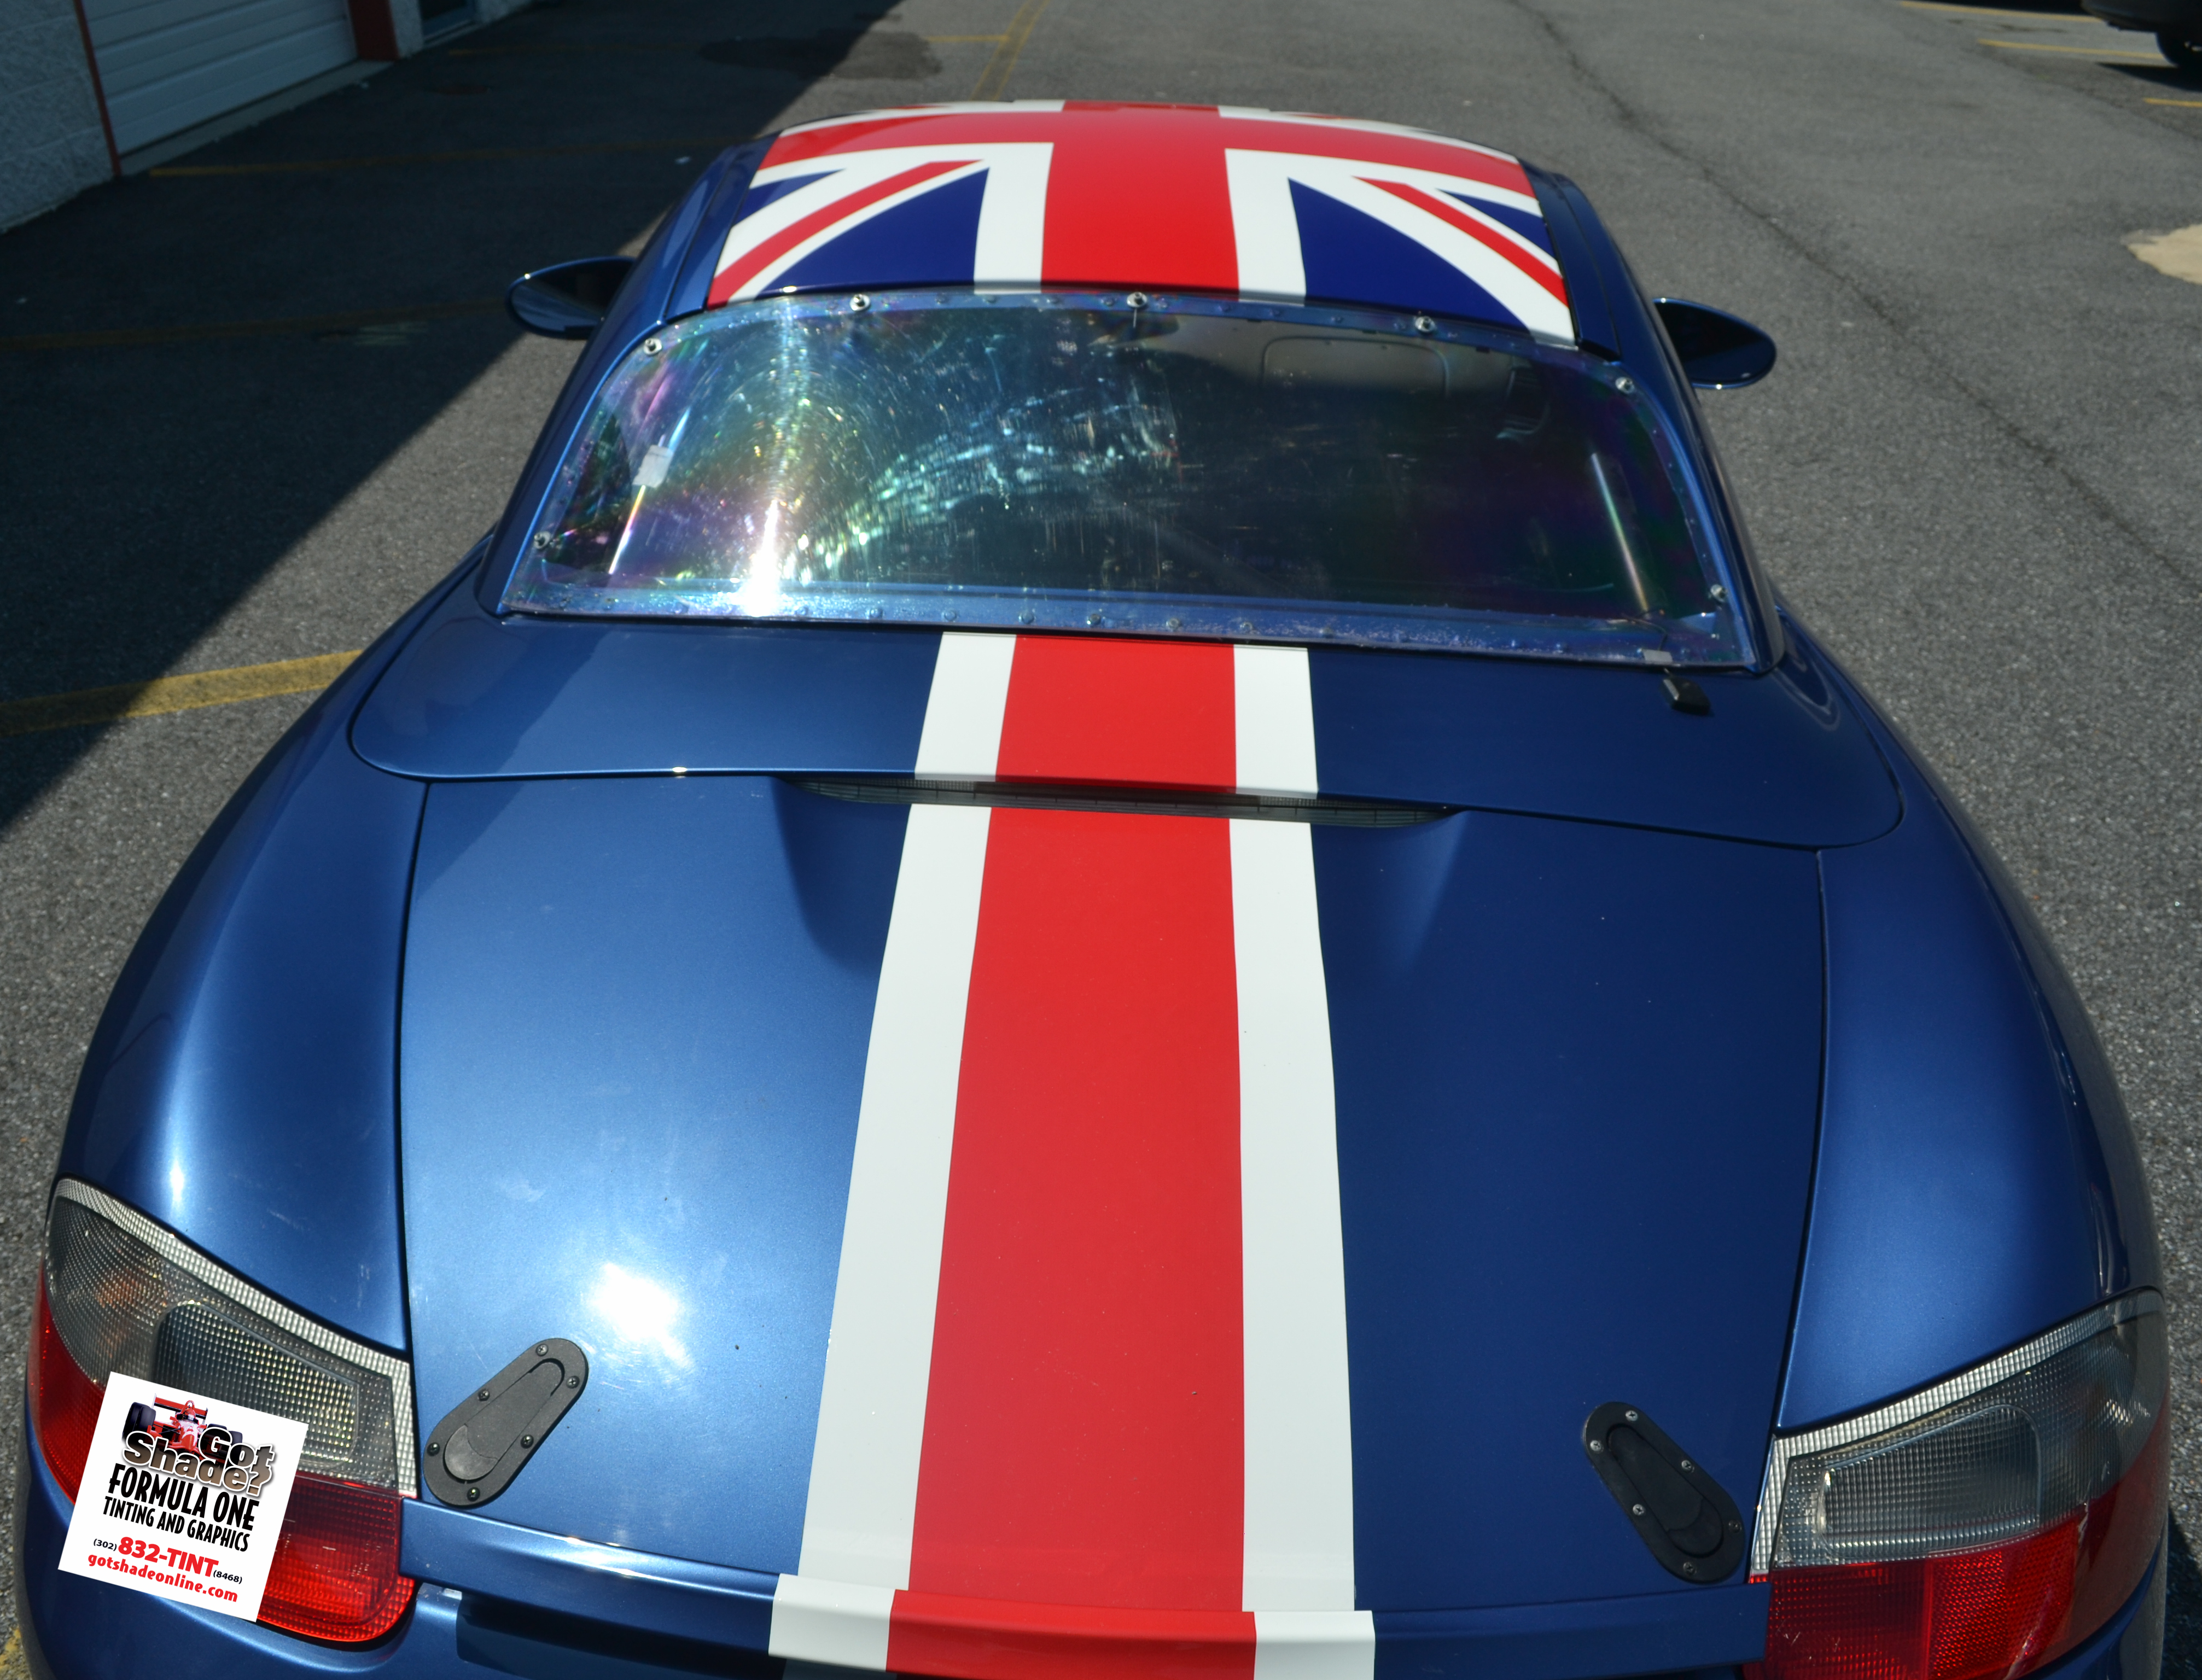 Car Paint Protection >> Formula One Tinting and Graphics: Custom Vehicle Wraps, Tinting and Paint Protection in DE, MD ...